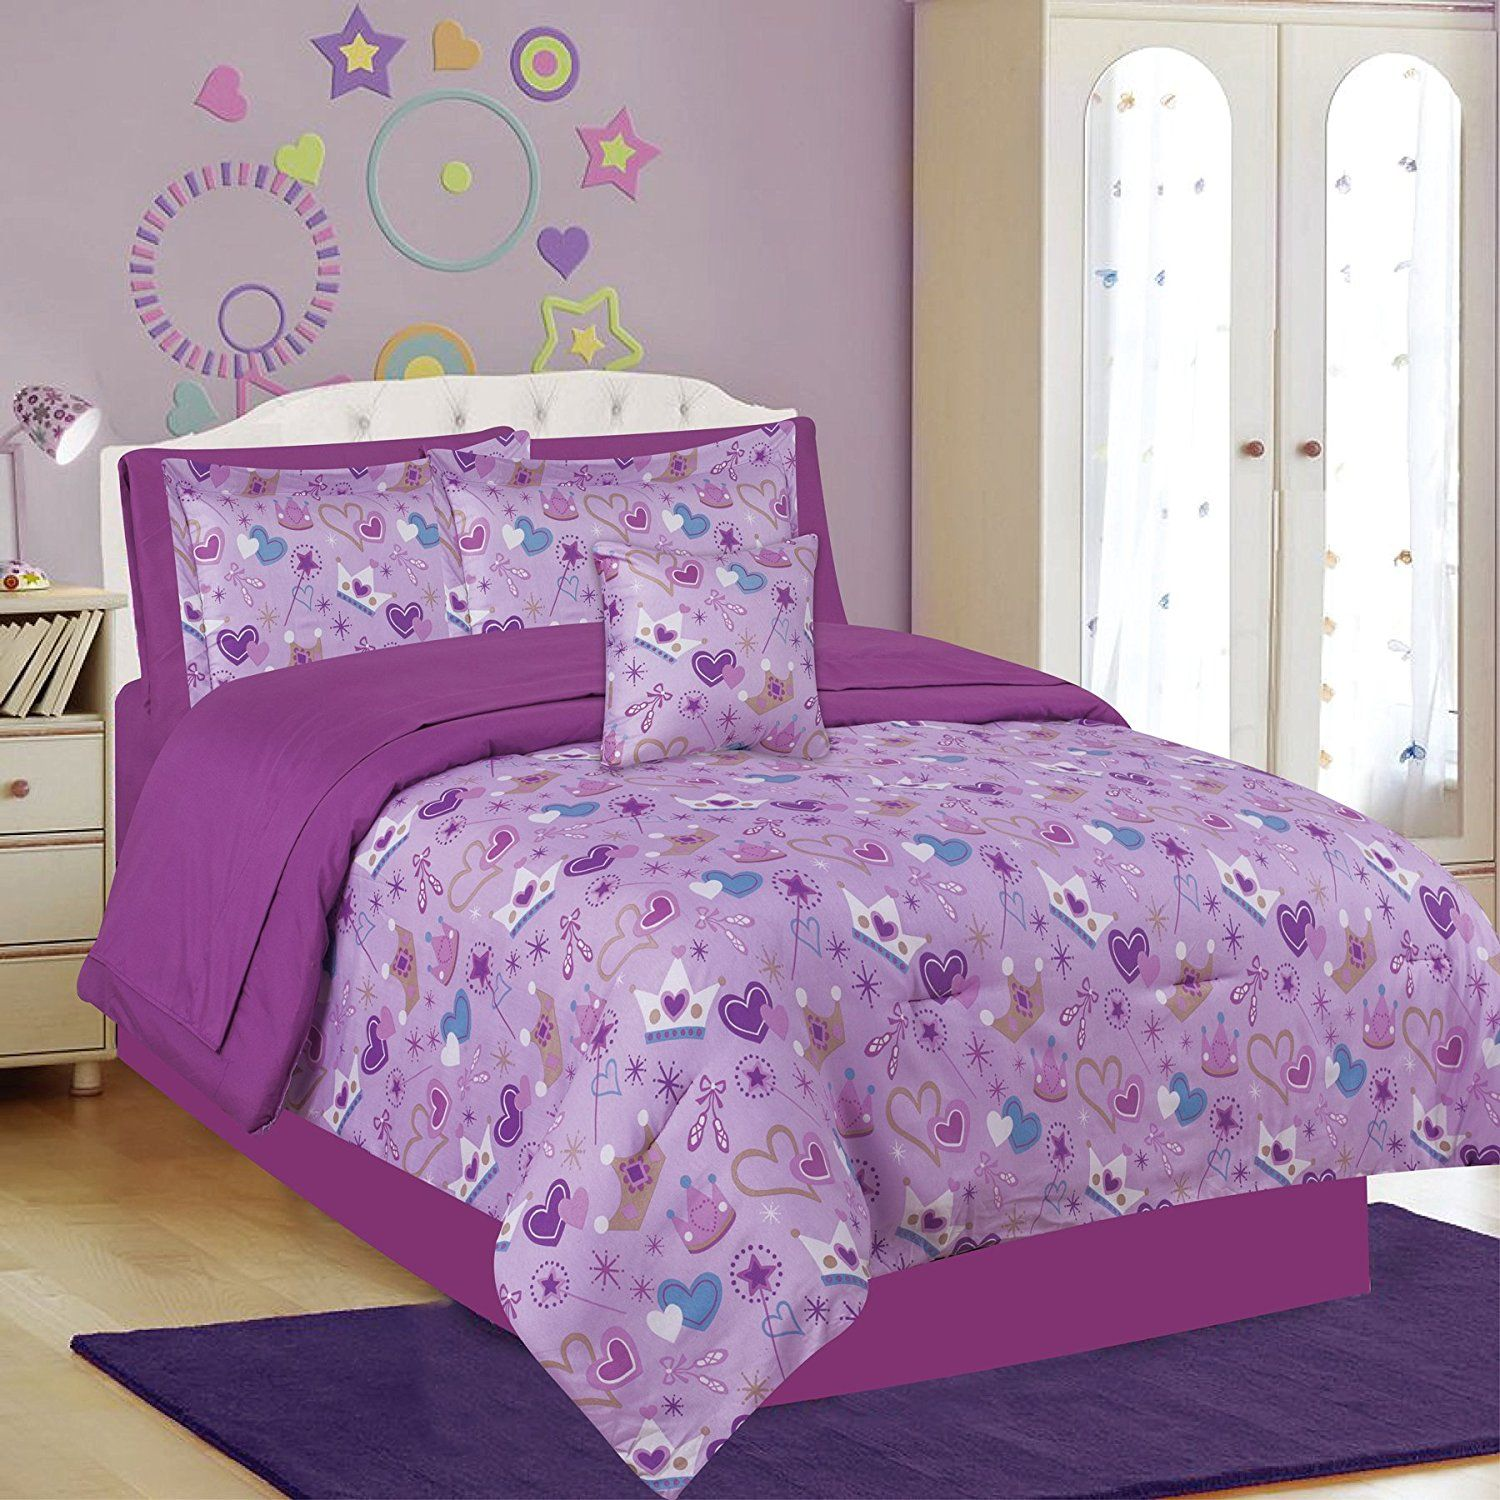 Girls Bedding Twin 6 Piece Comforter and Sheet